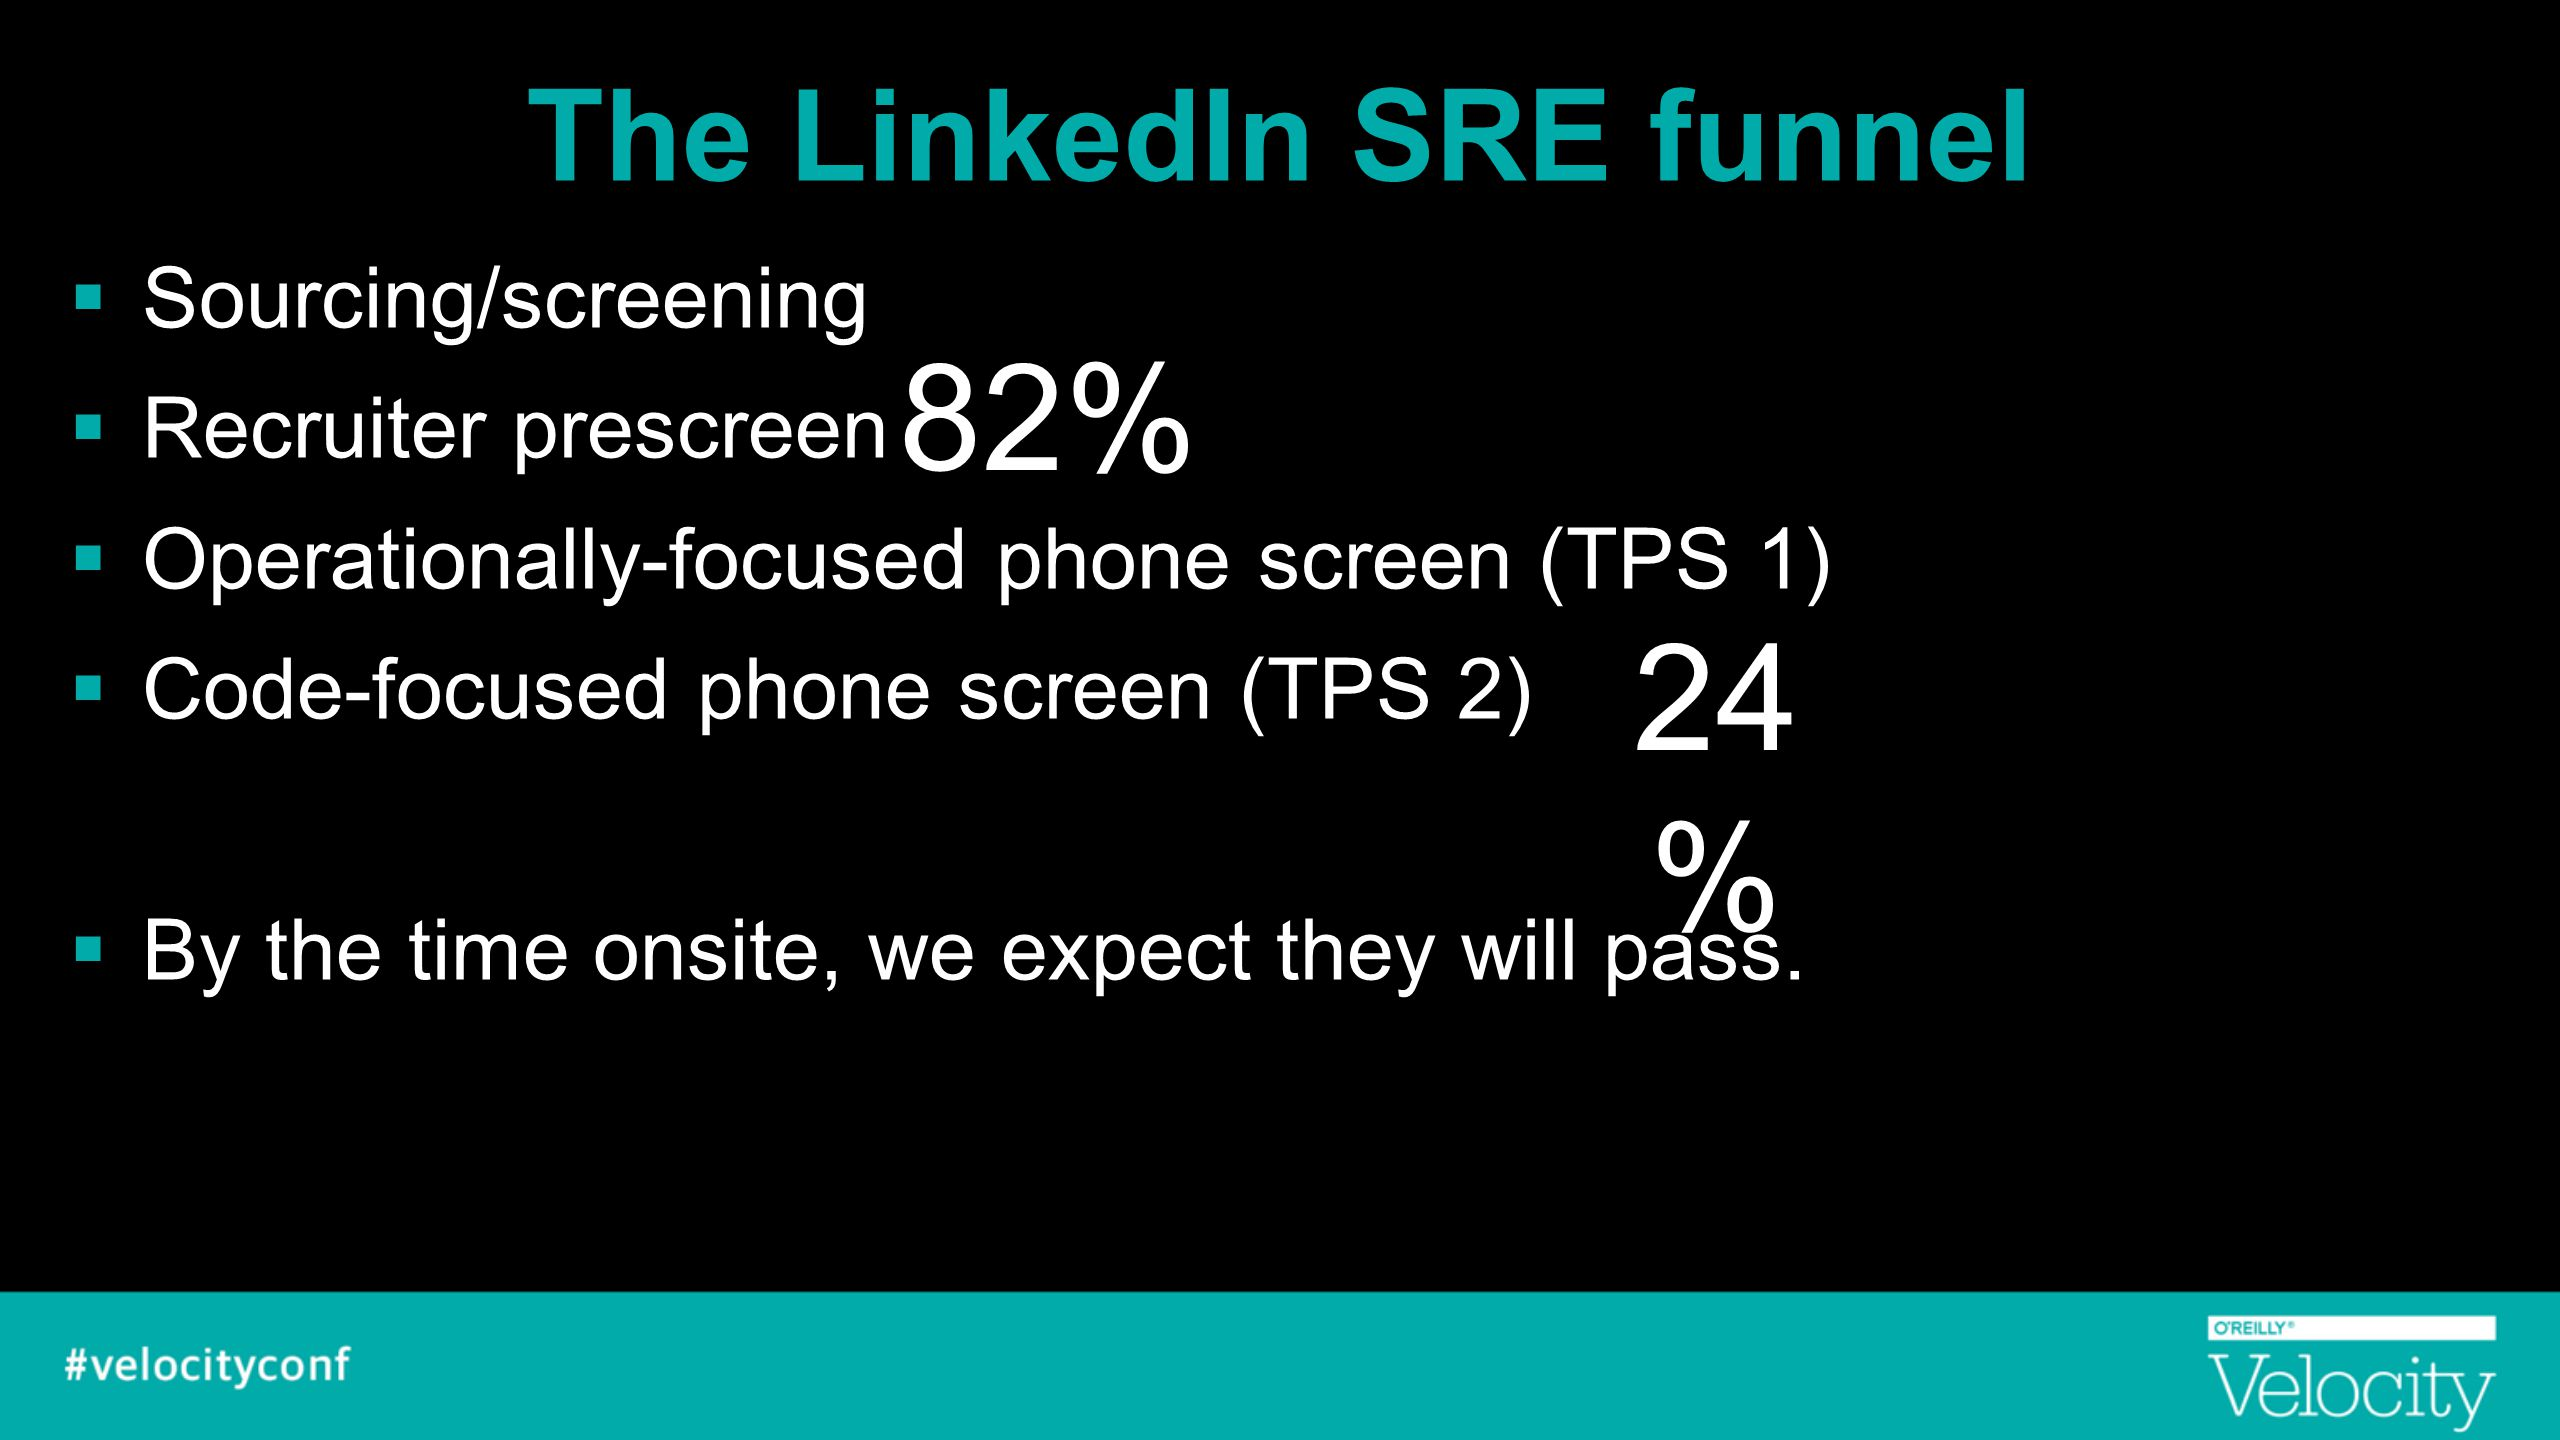 The LinkedIn SRE funnel